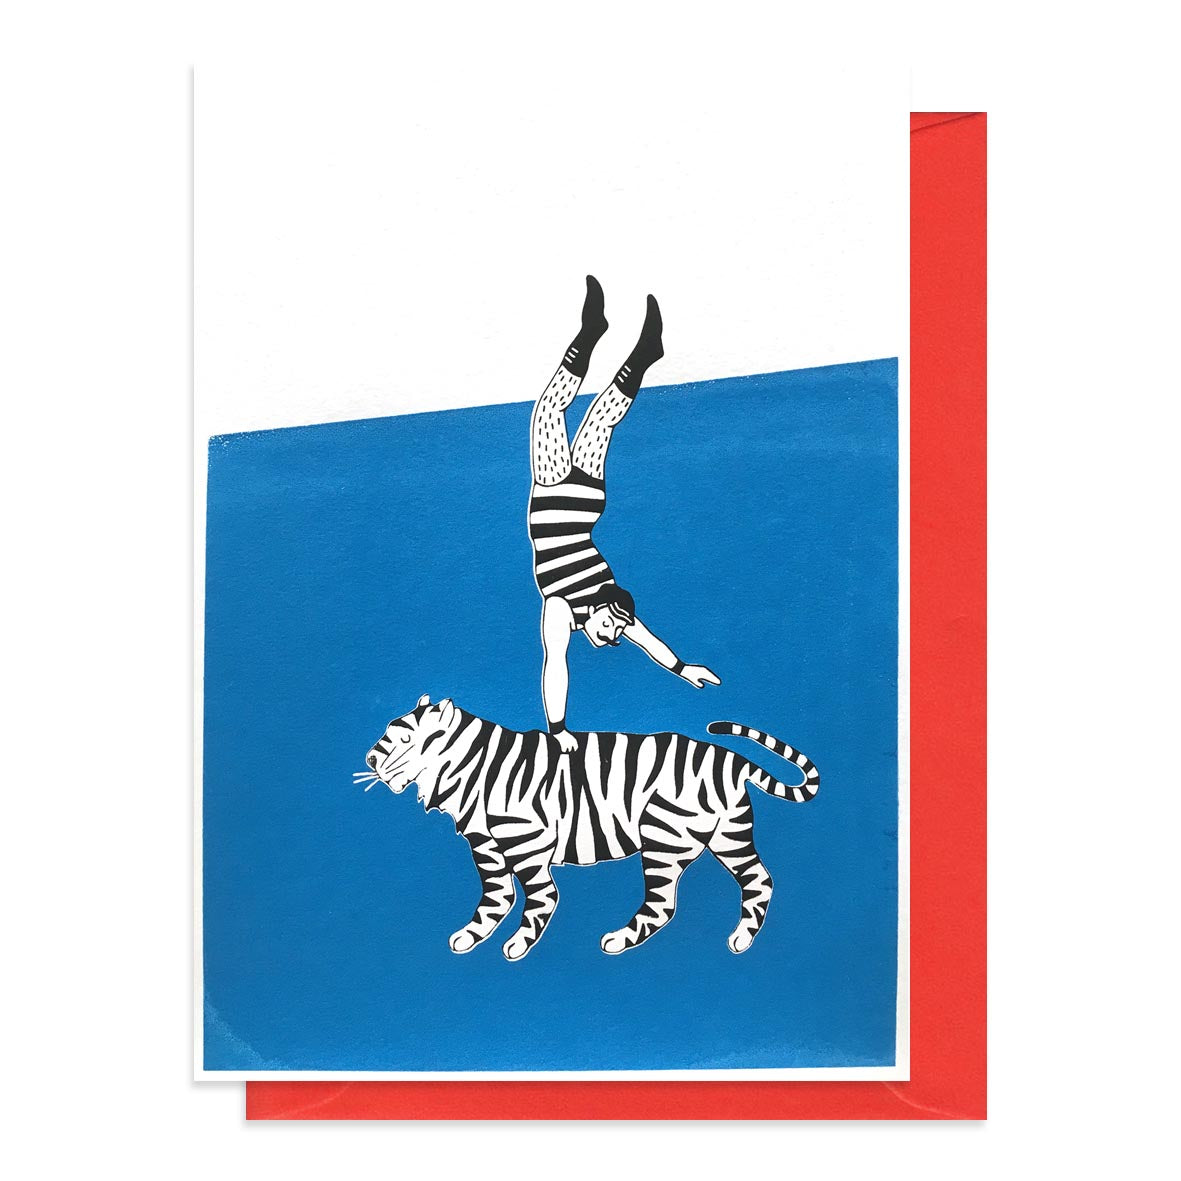 Greetings card featuring a print of an acrobat and a tiger